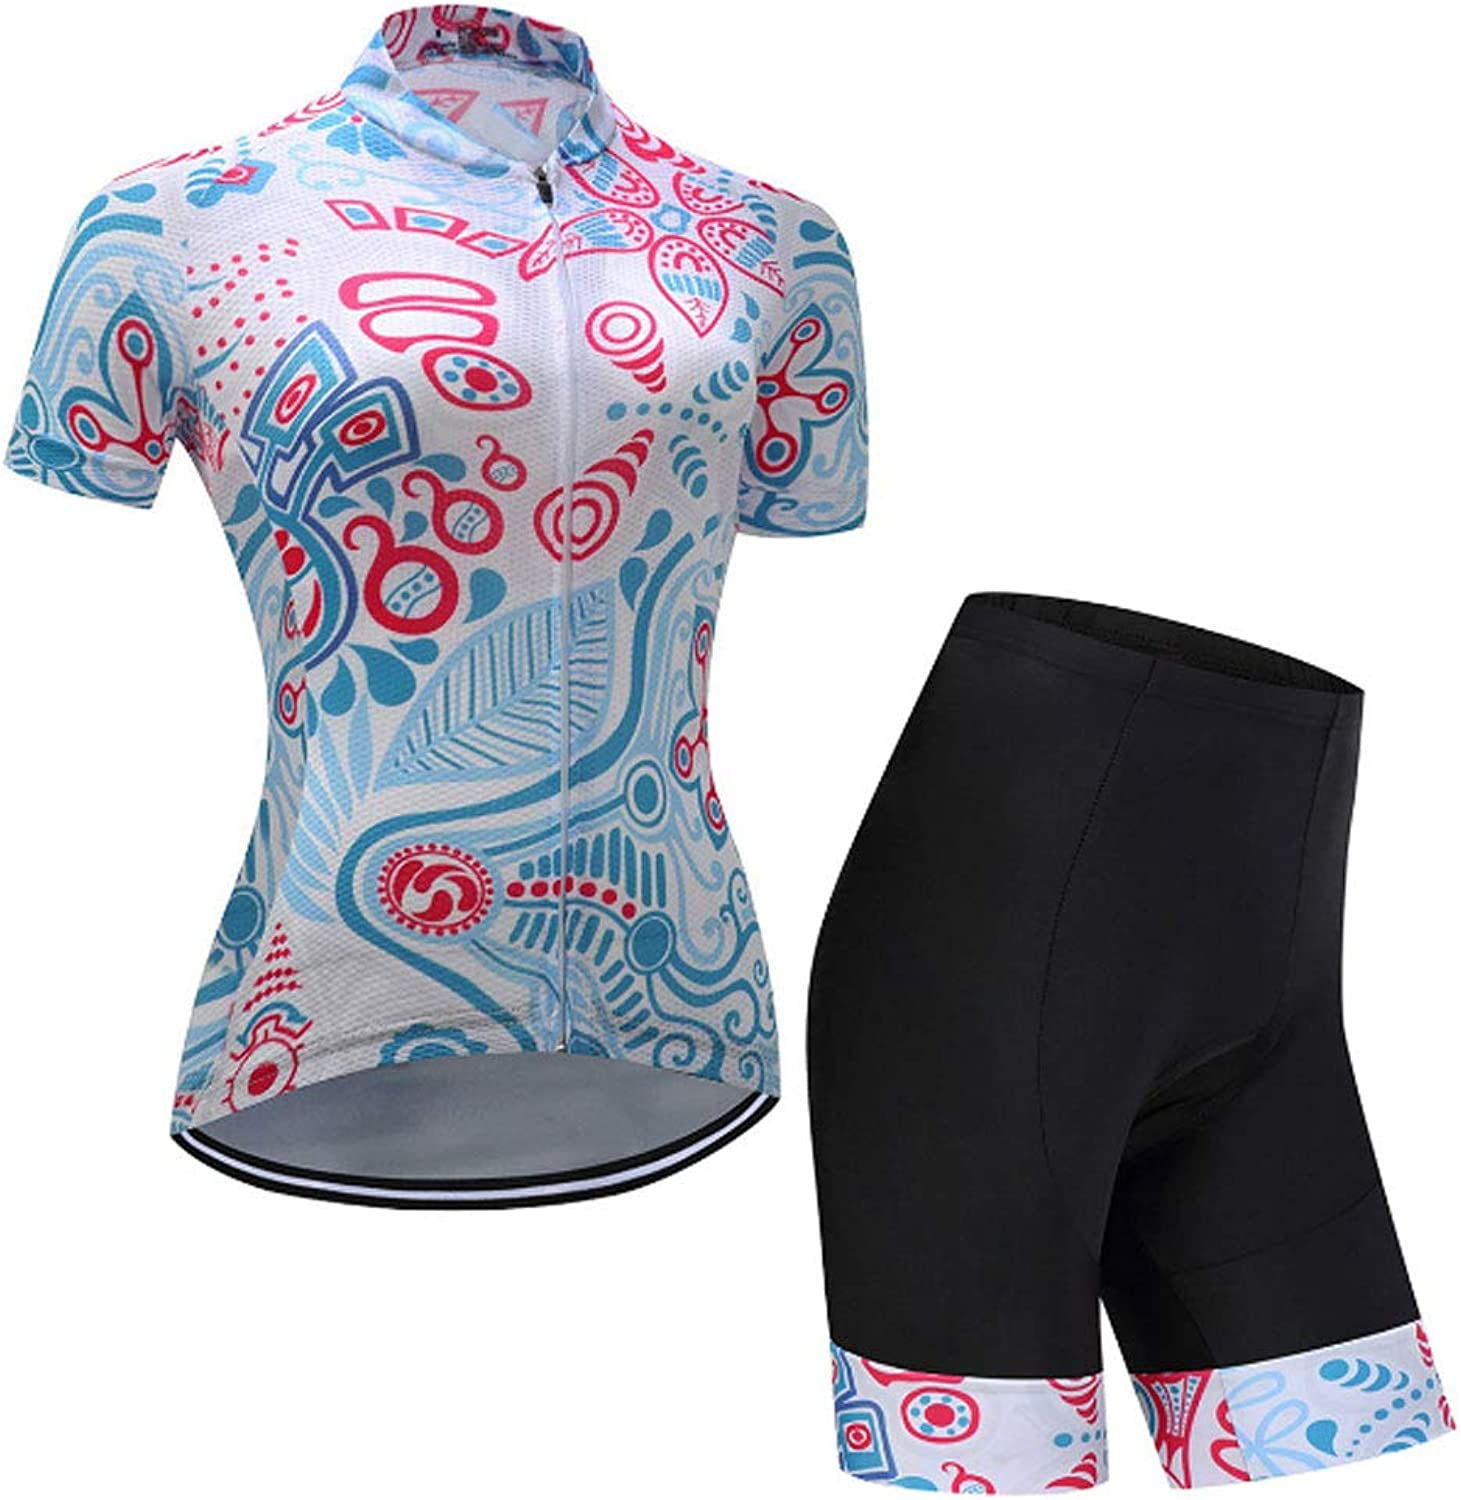 Women's Cycling Jersey Short Sleeve, Full Zip Bike Shirt Running Bicycle Clothes Top + 3D Gel Padded Bib Shorts Quick Dry Breathable